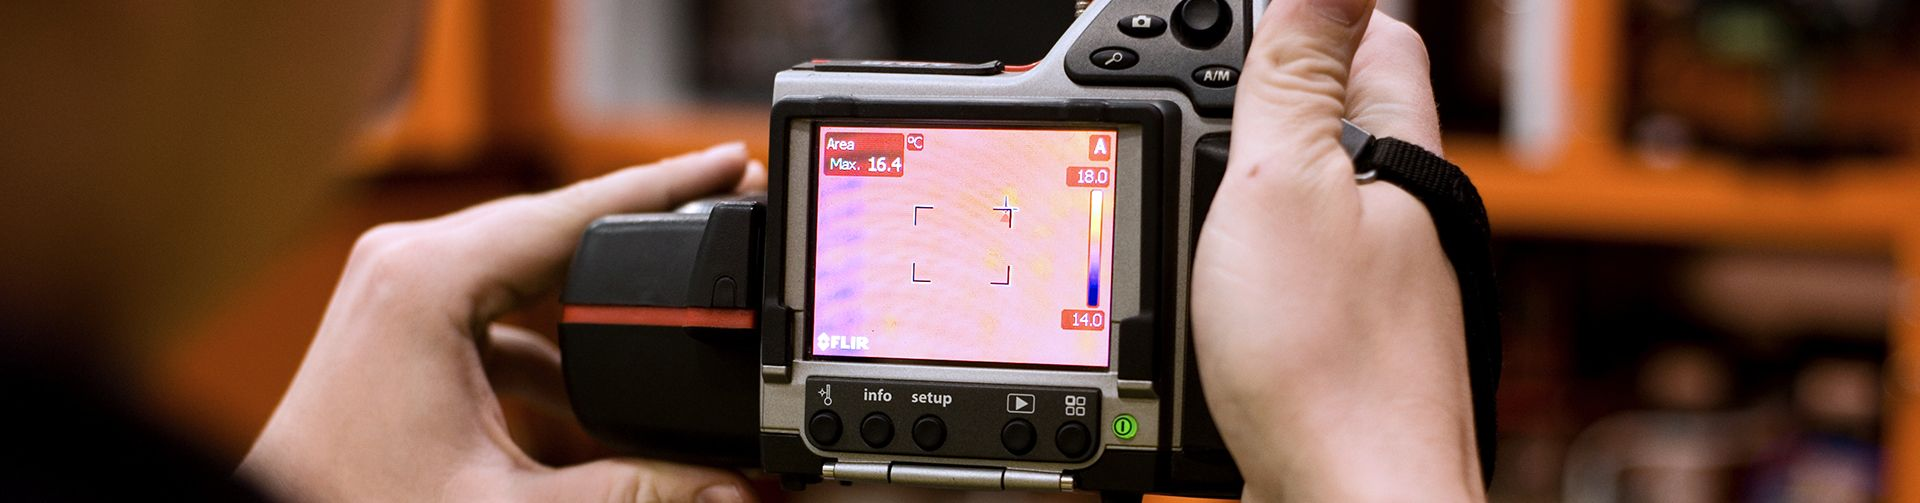 thermographic camera at work